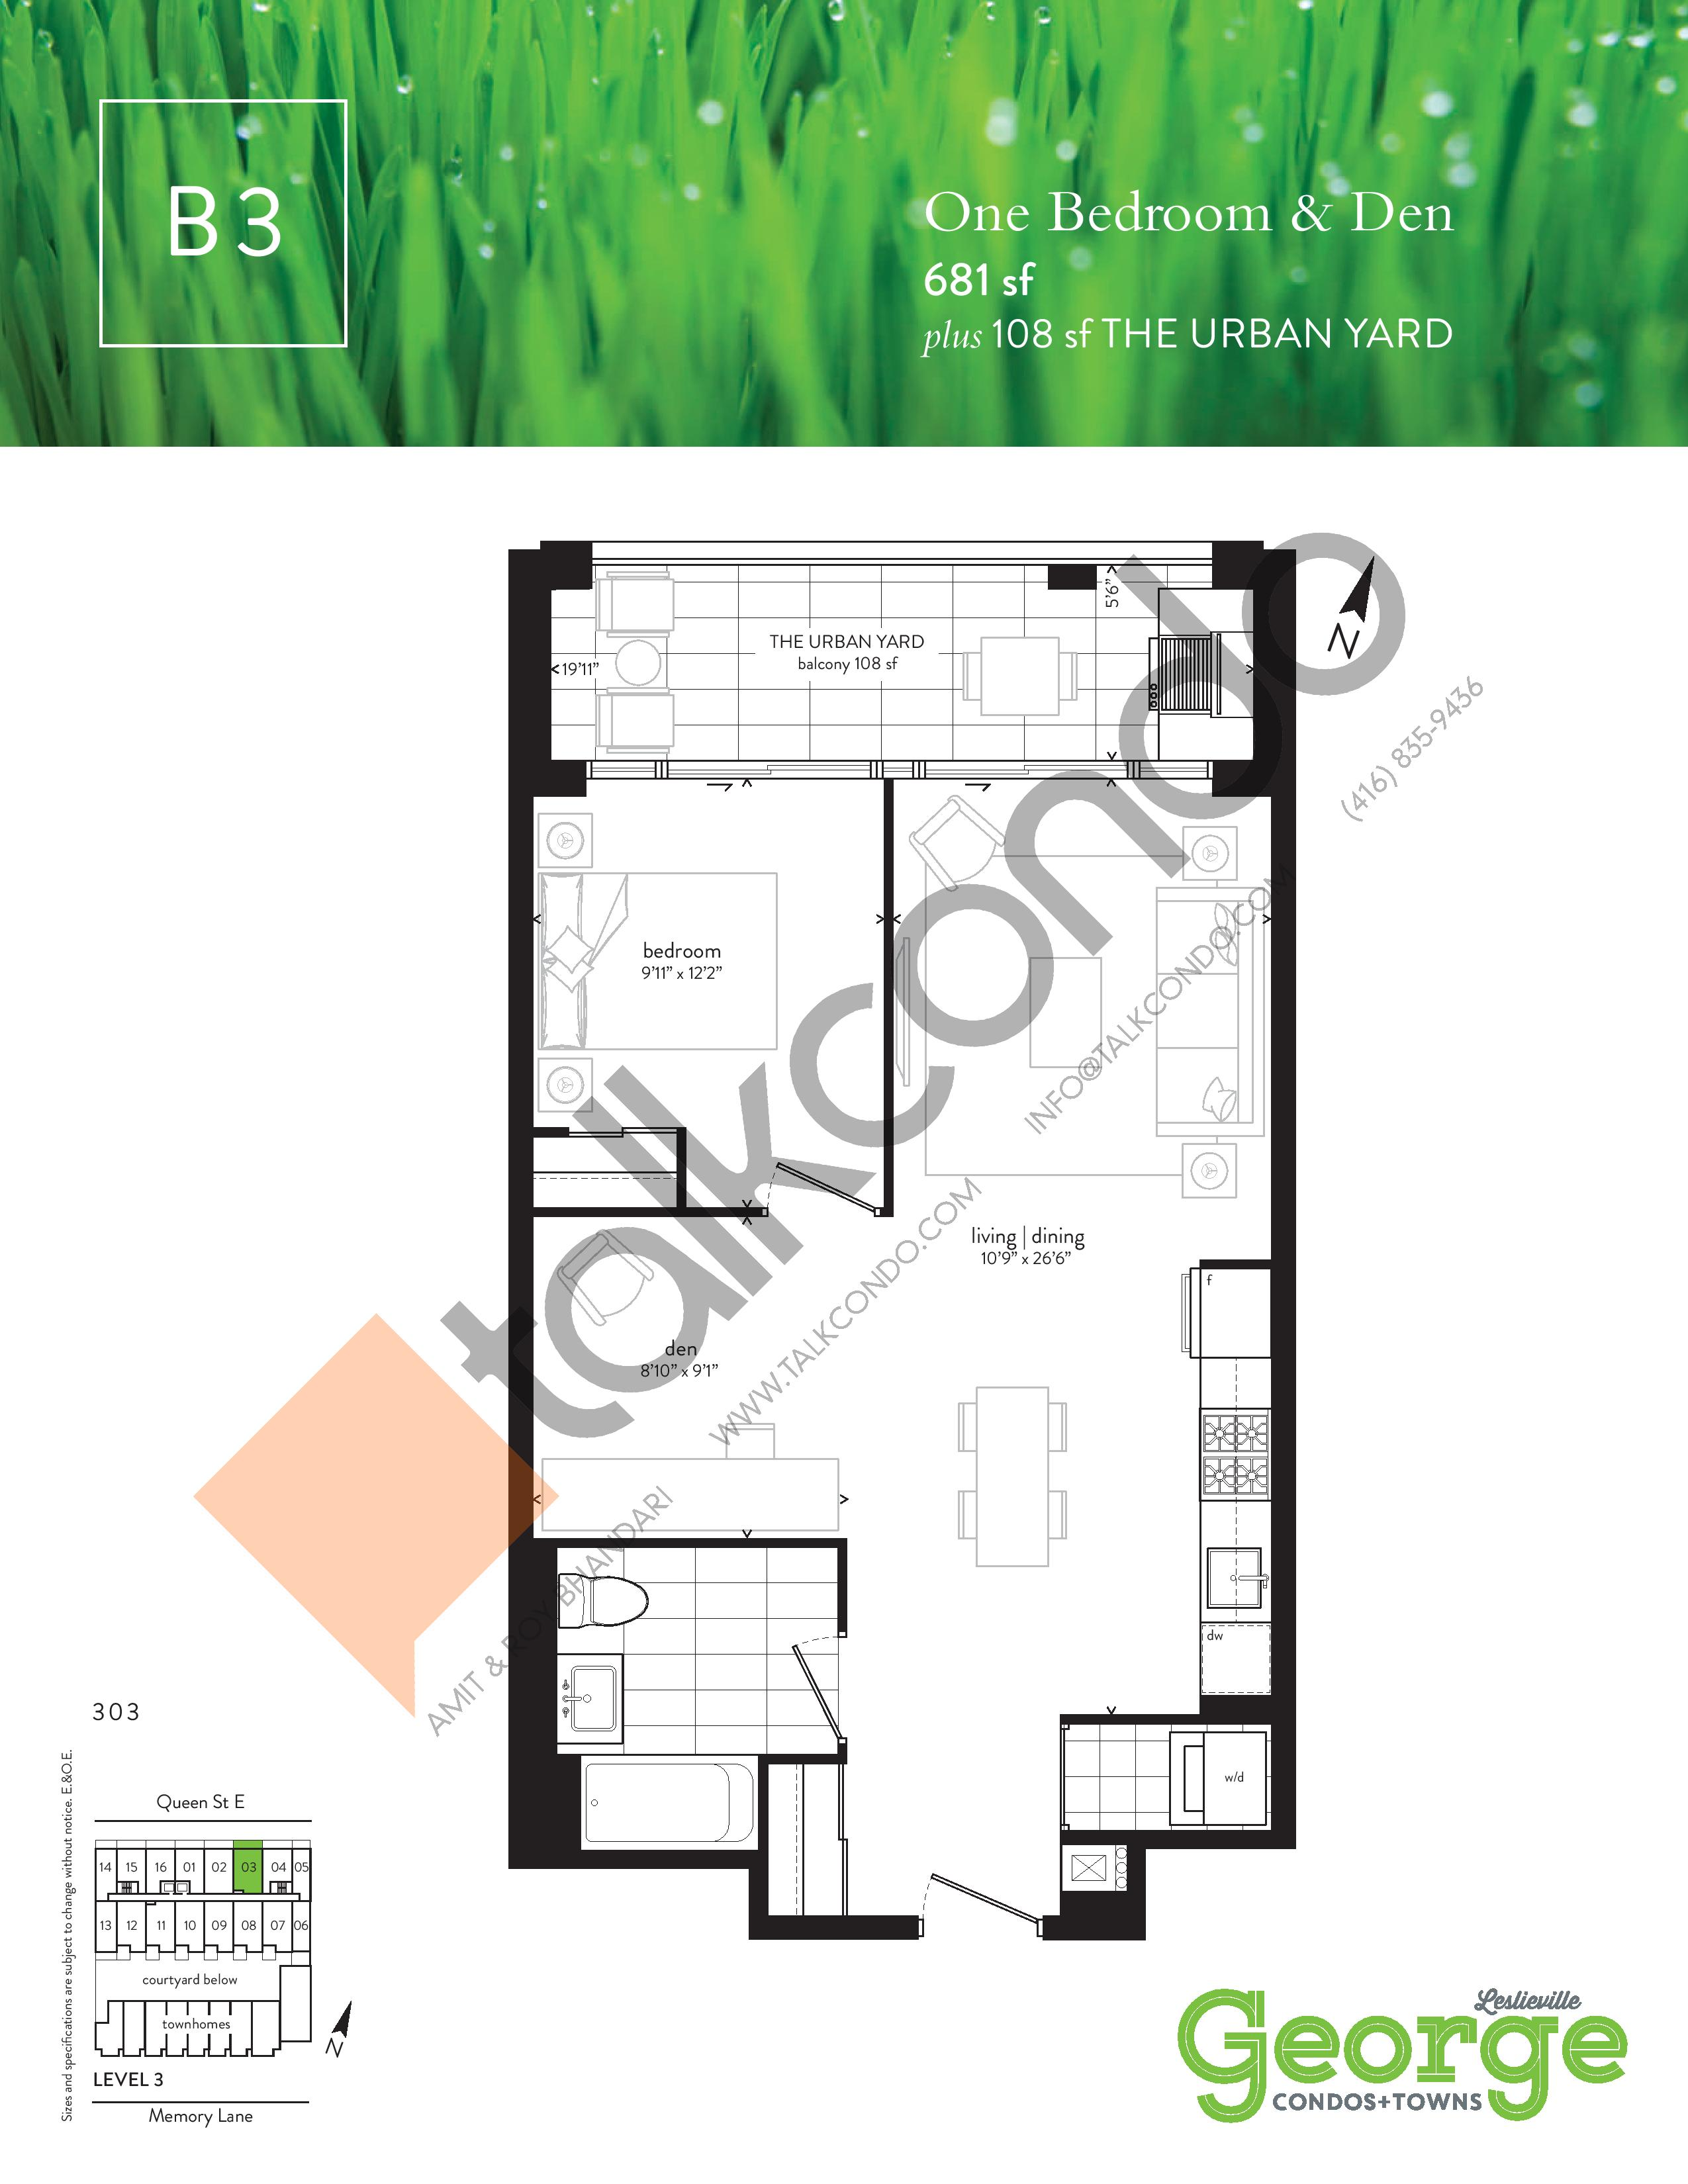 B3 Floor Plan at George Condos & Towns - 681 sq.ft